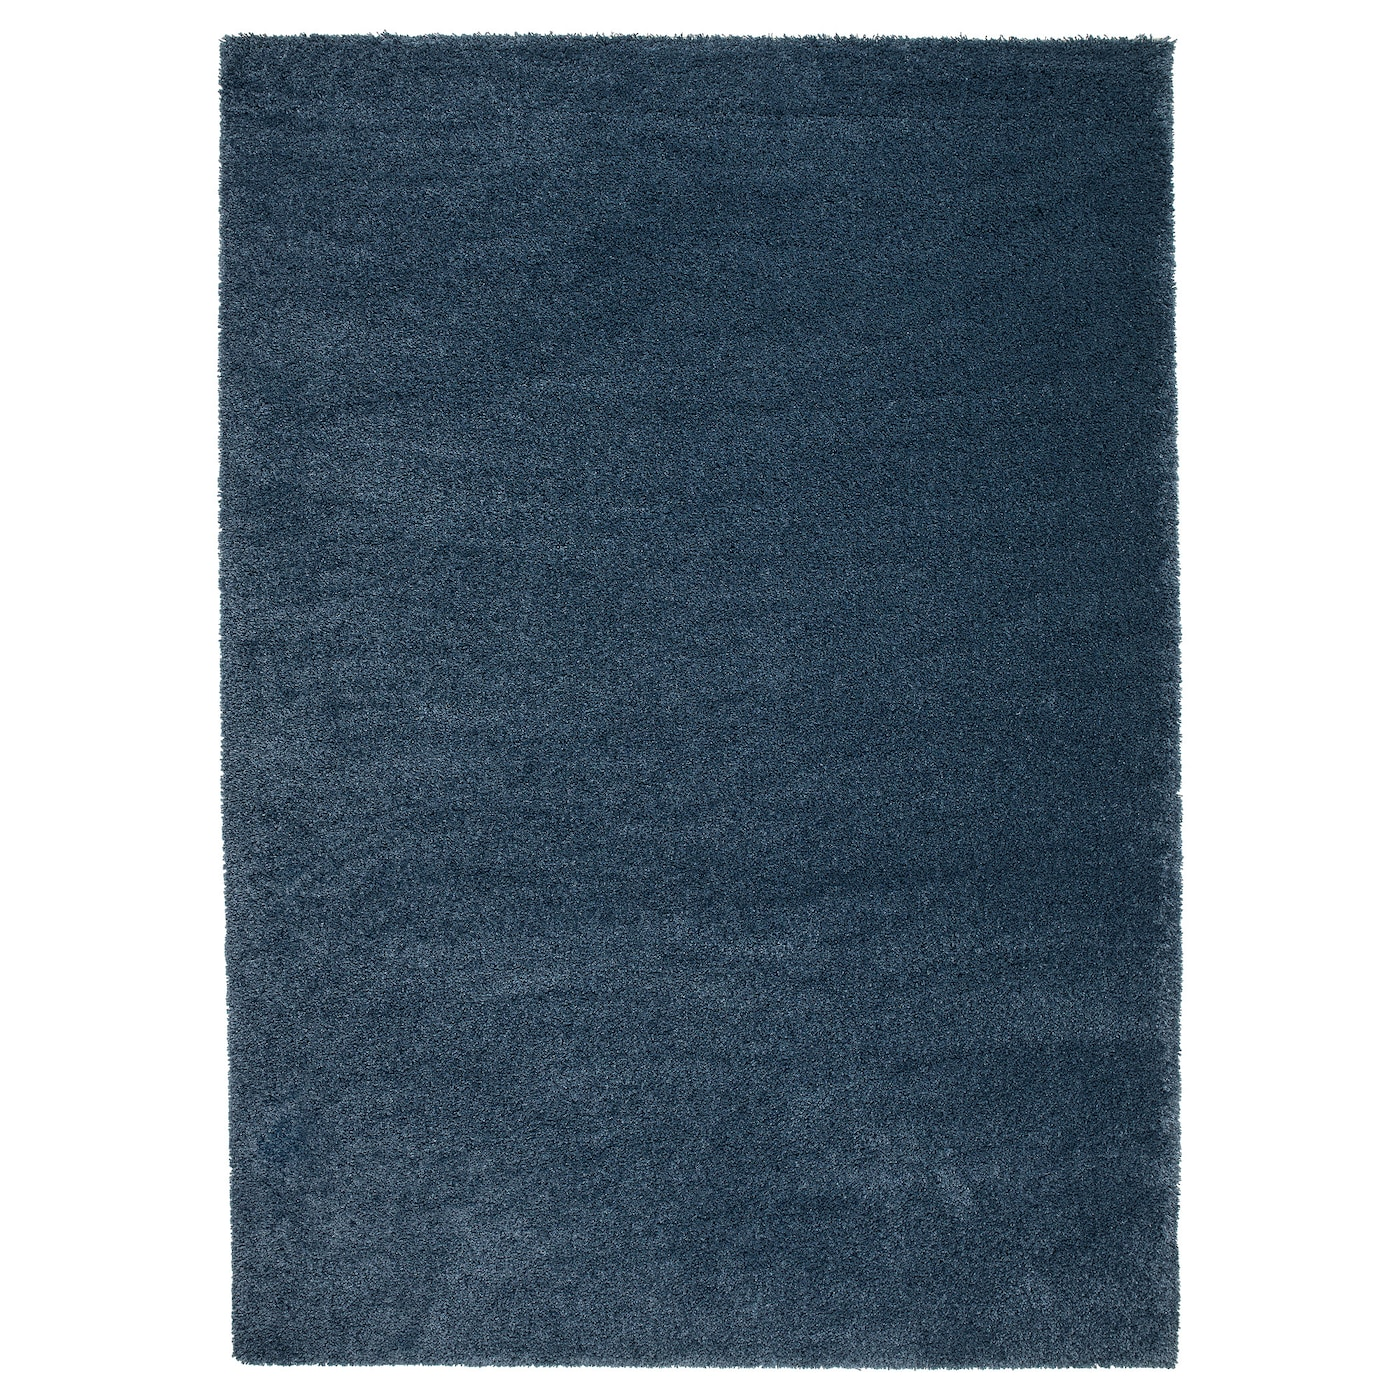 dum tapis poils hauts bleu fonc 170x240 cm ikea. Black Bedroom Furniture Sets. Home Design Ideas